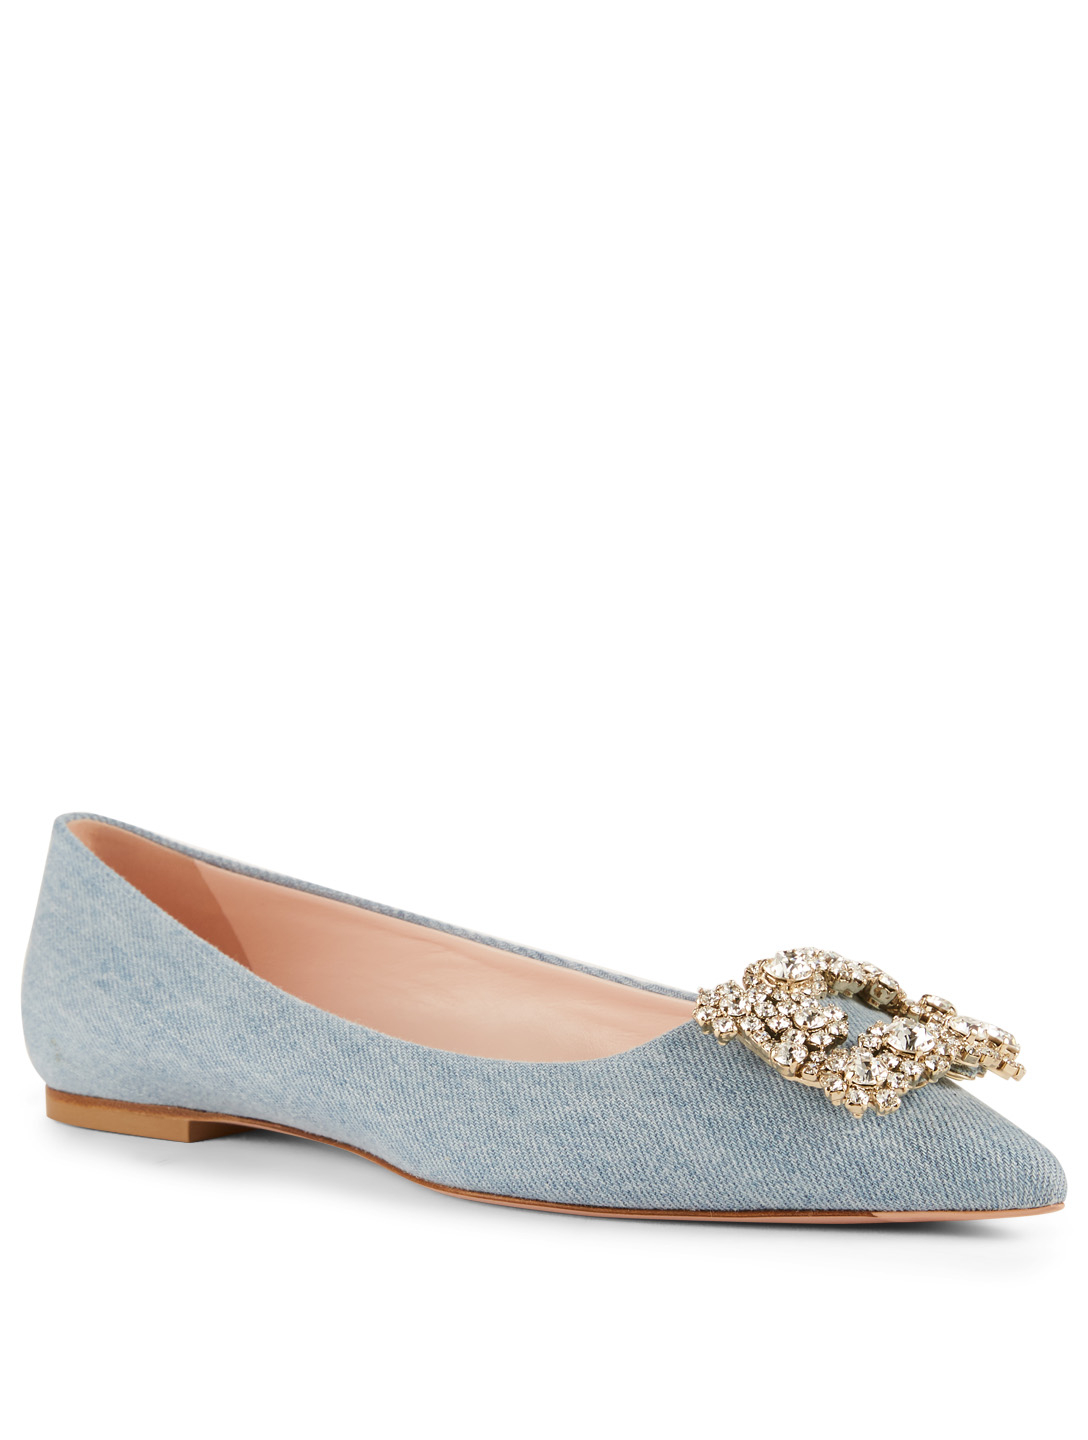 ROGER VIVIER Flower Strass Denim Ballet Flats Womens Blue